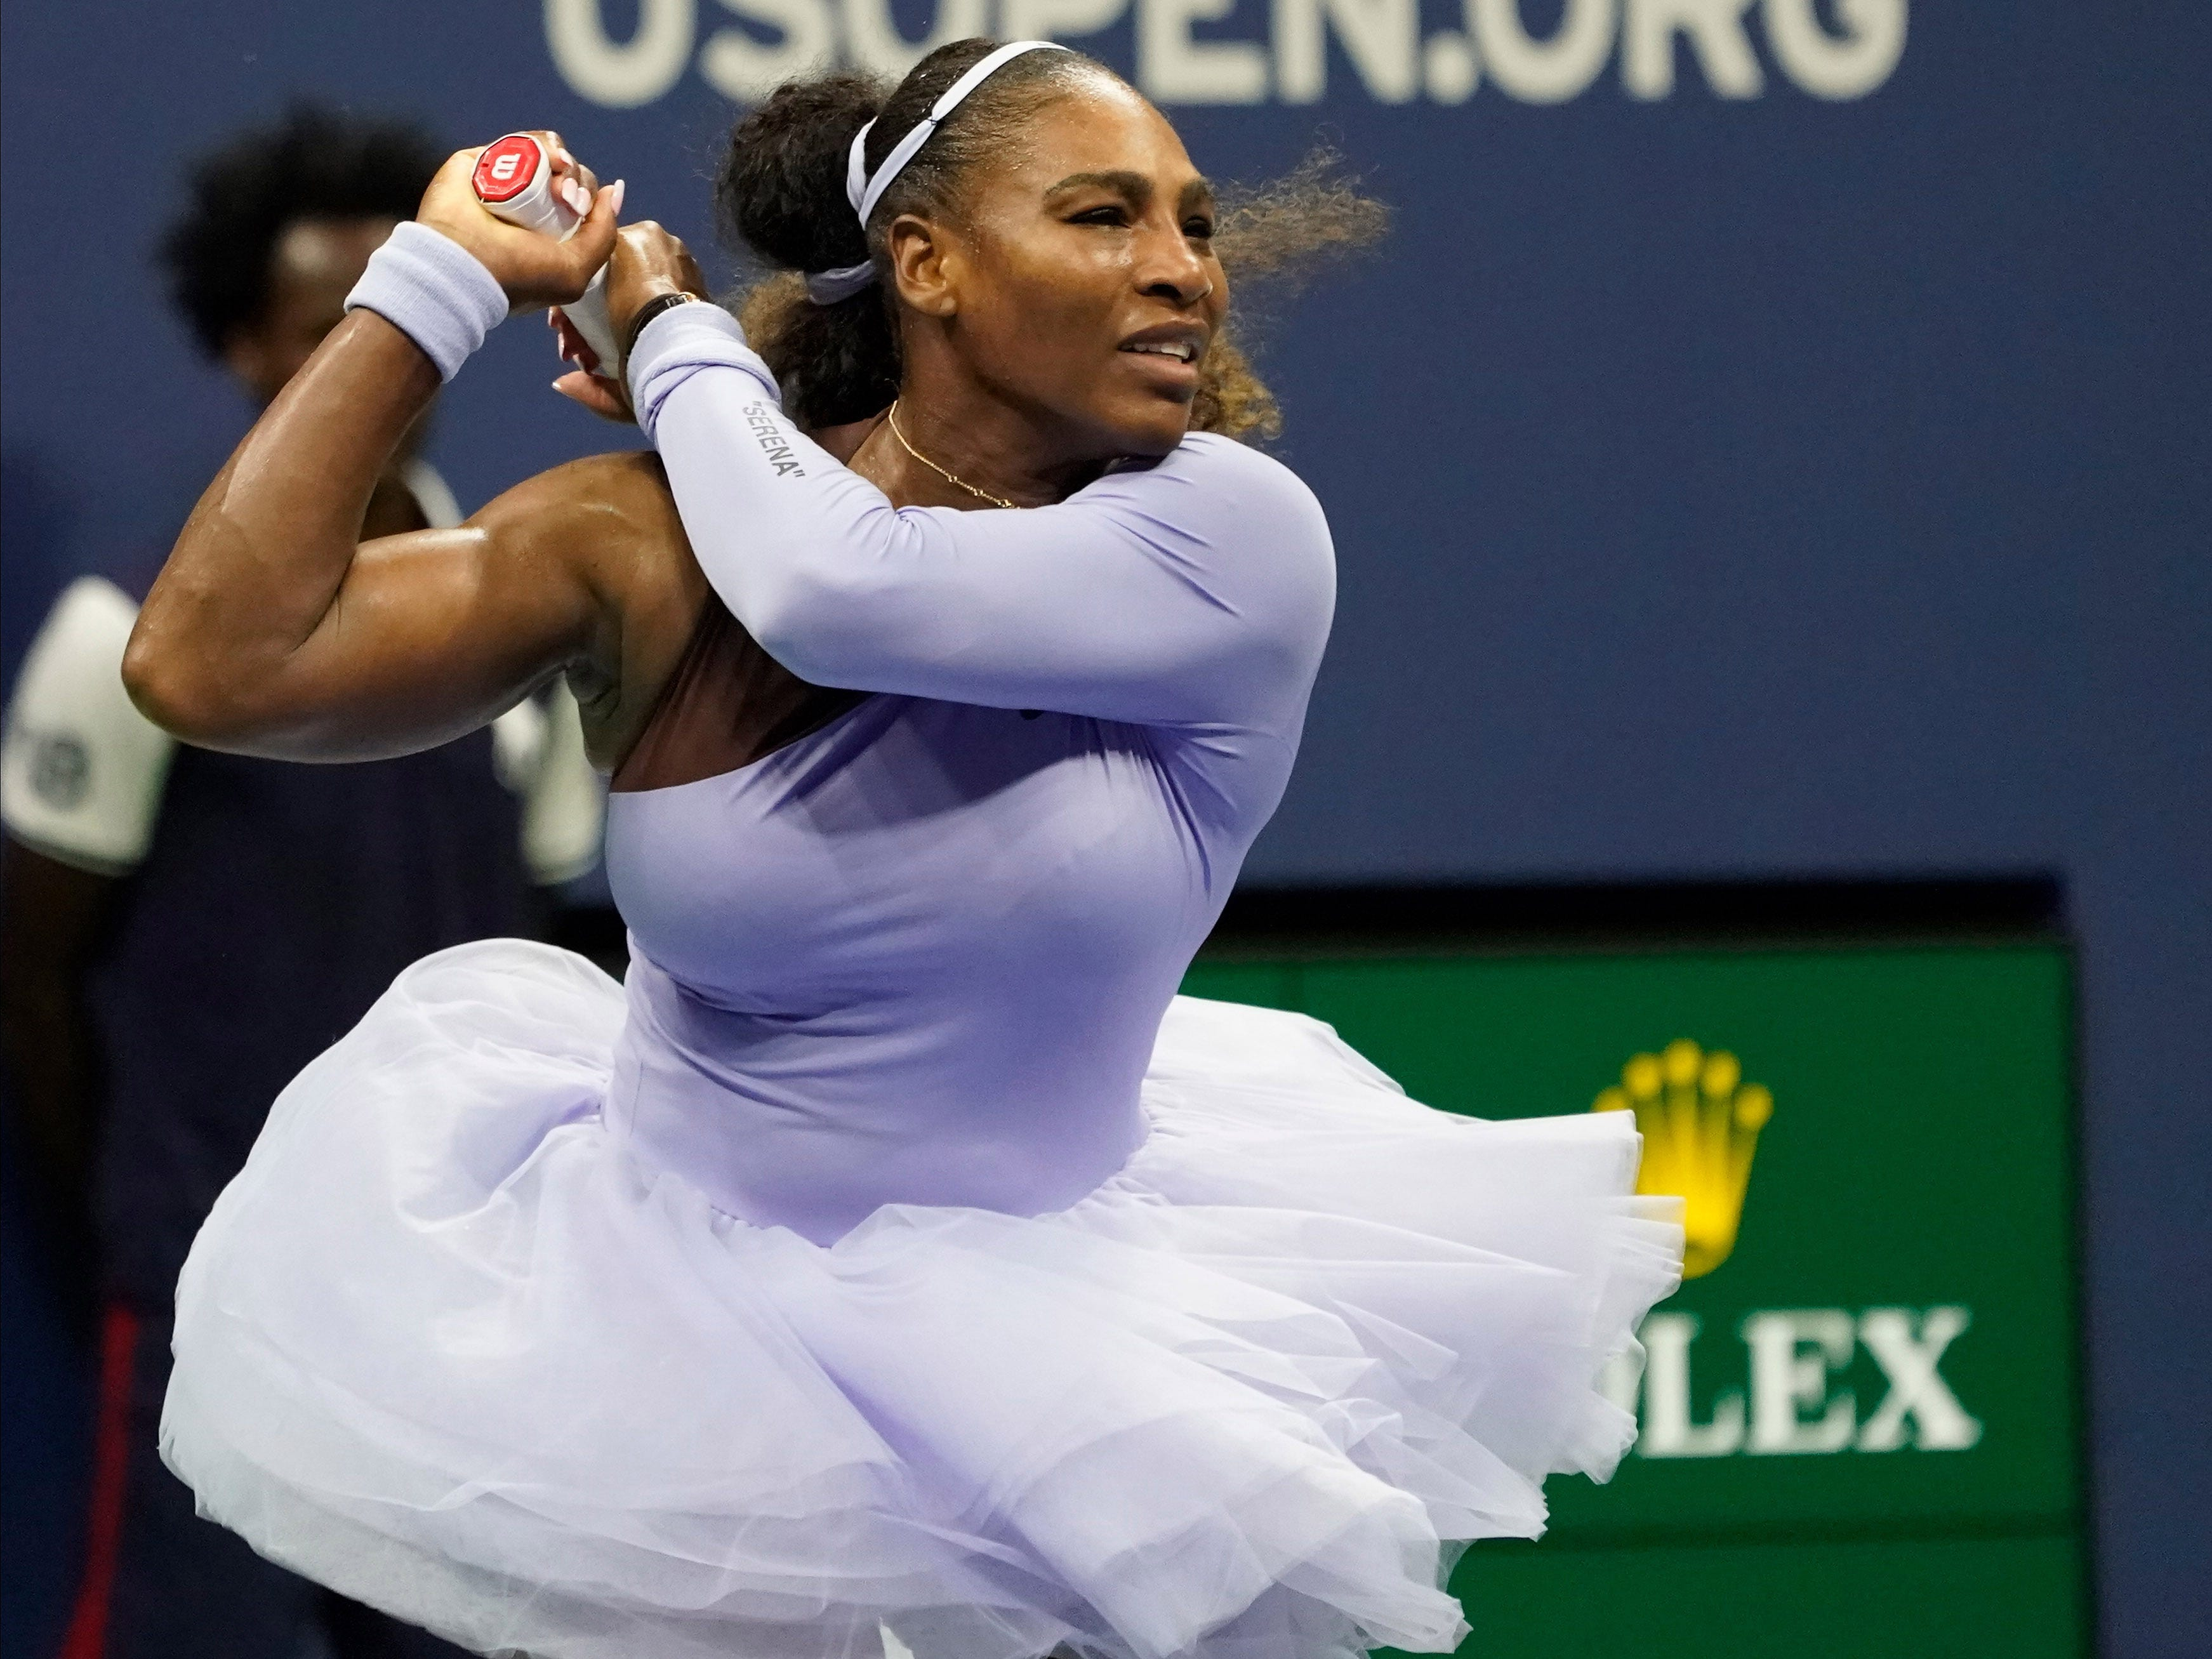 Serena Williams of the USA breezes past Carina Witthoeft of Germany 6-2, 6-2 and into a third-round showdown against sister Venus.